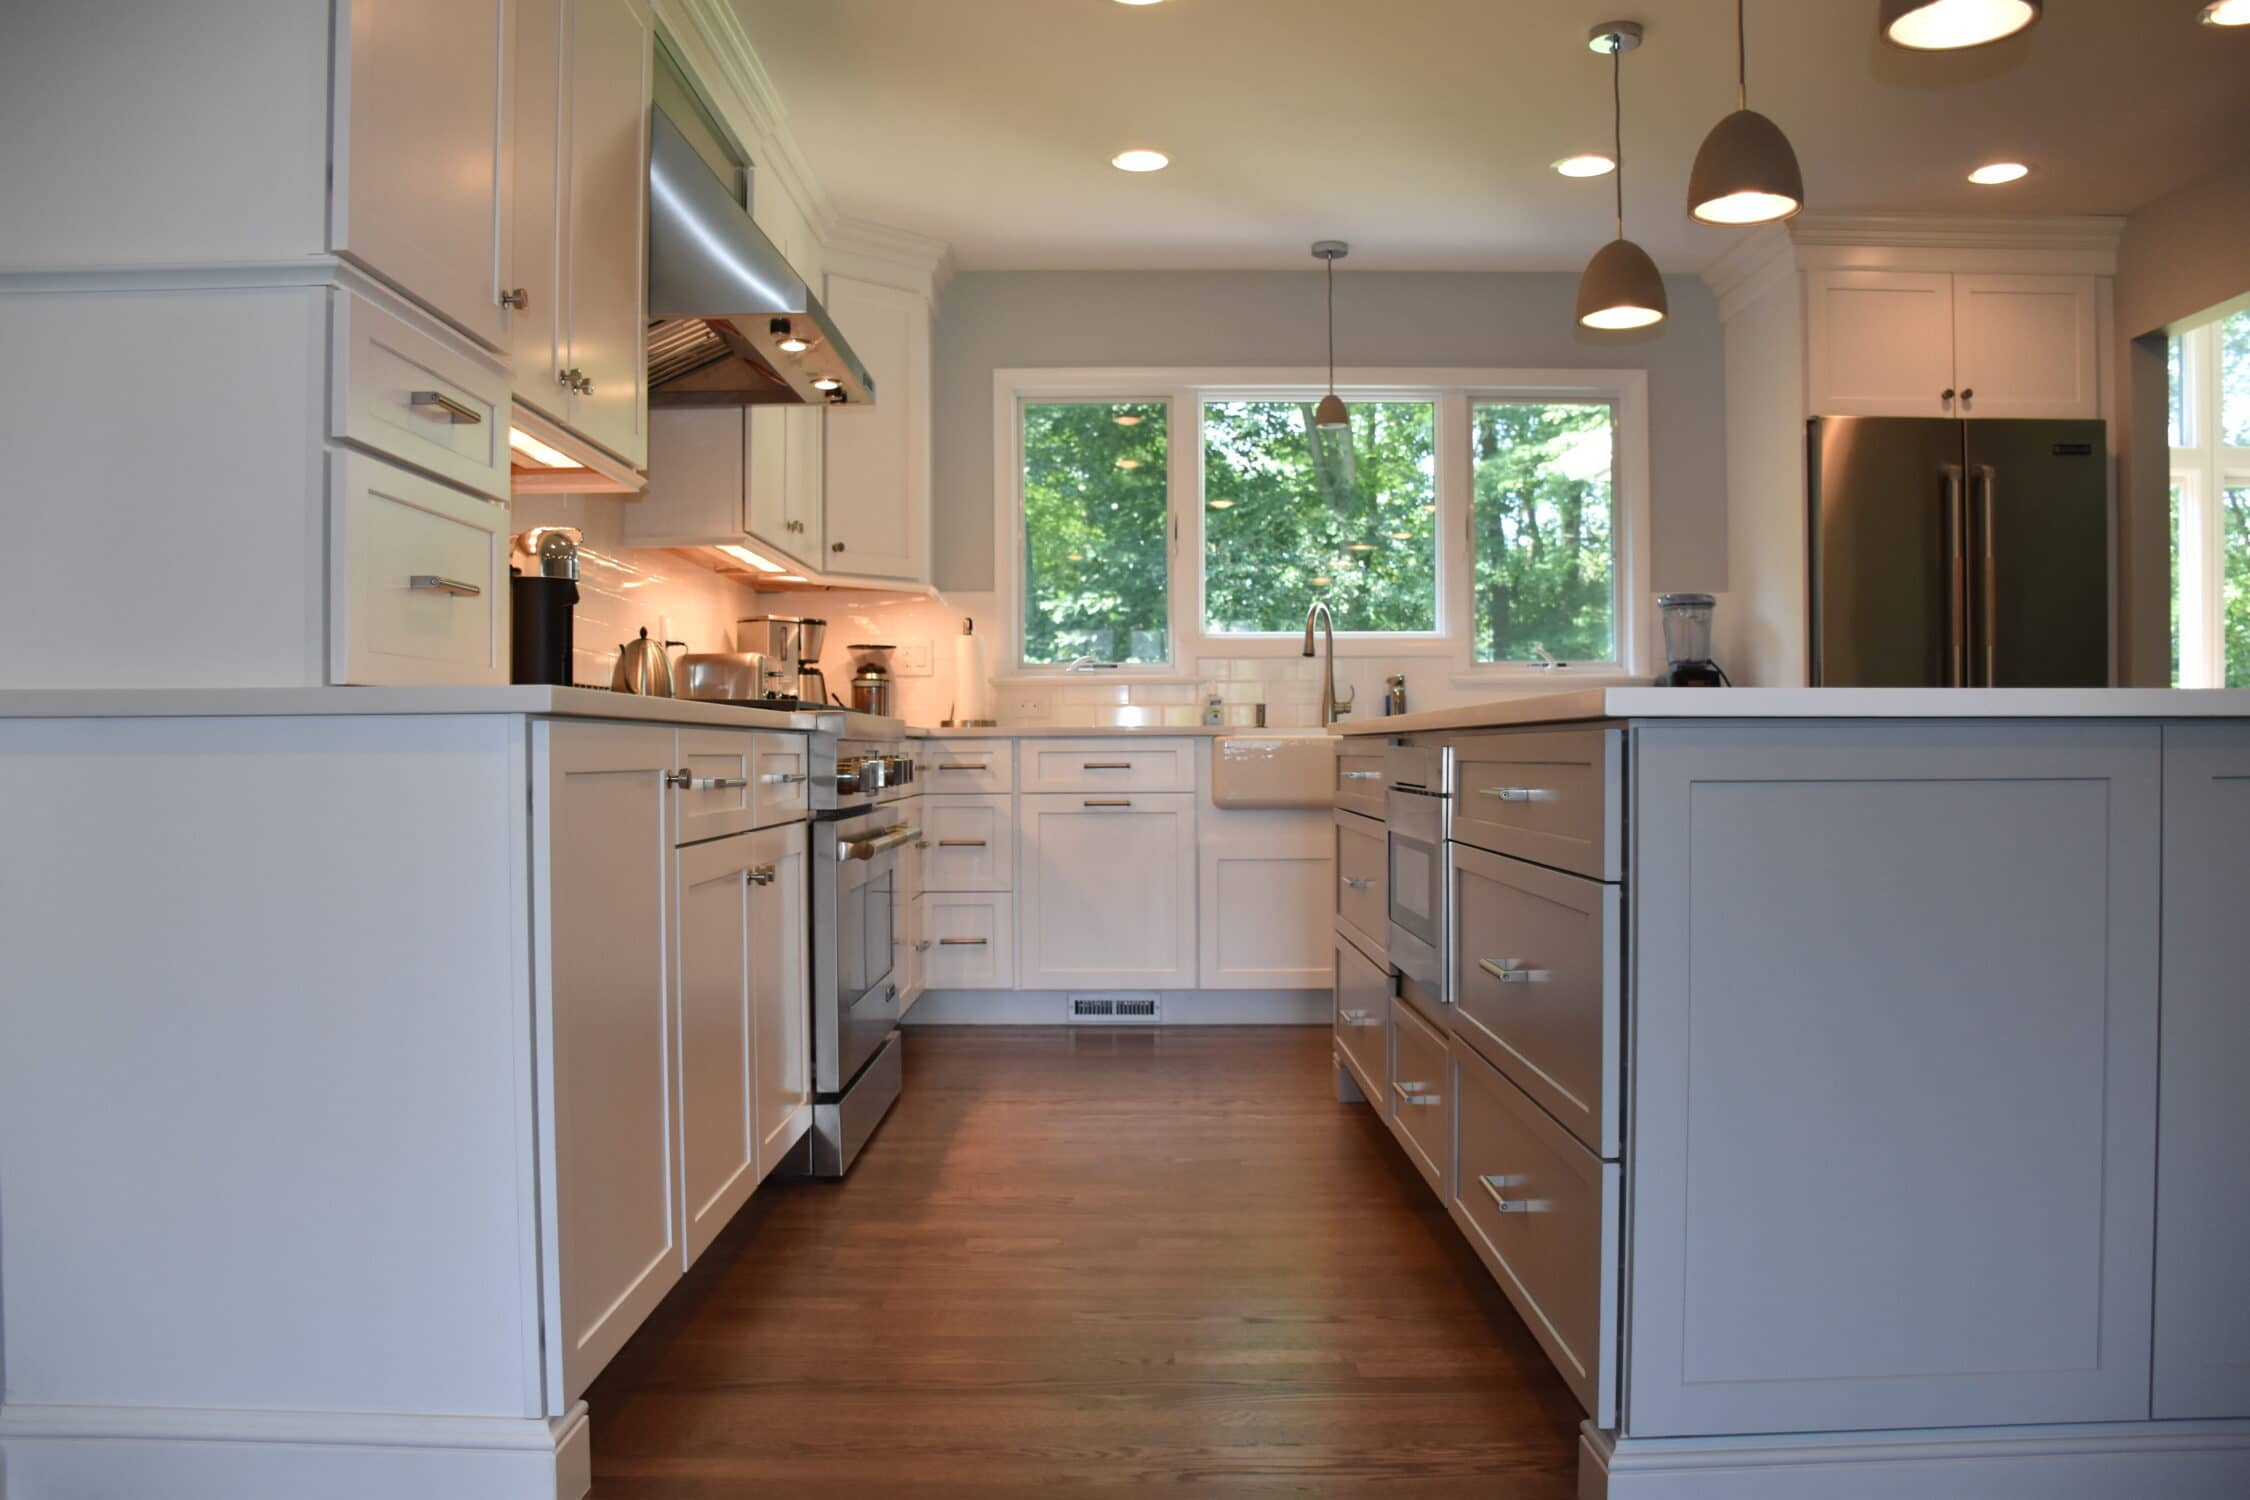 Home By Rearranging The Existing Kitchen And Dining Room Layout Result Was A Completely New E That Flowed Better With Rest Of House